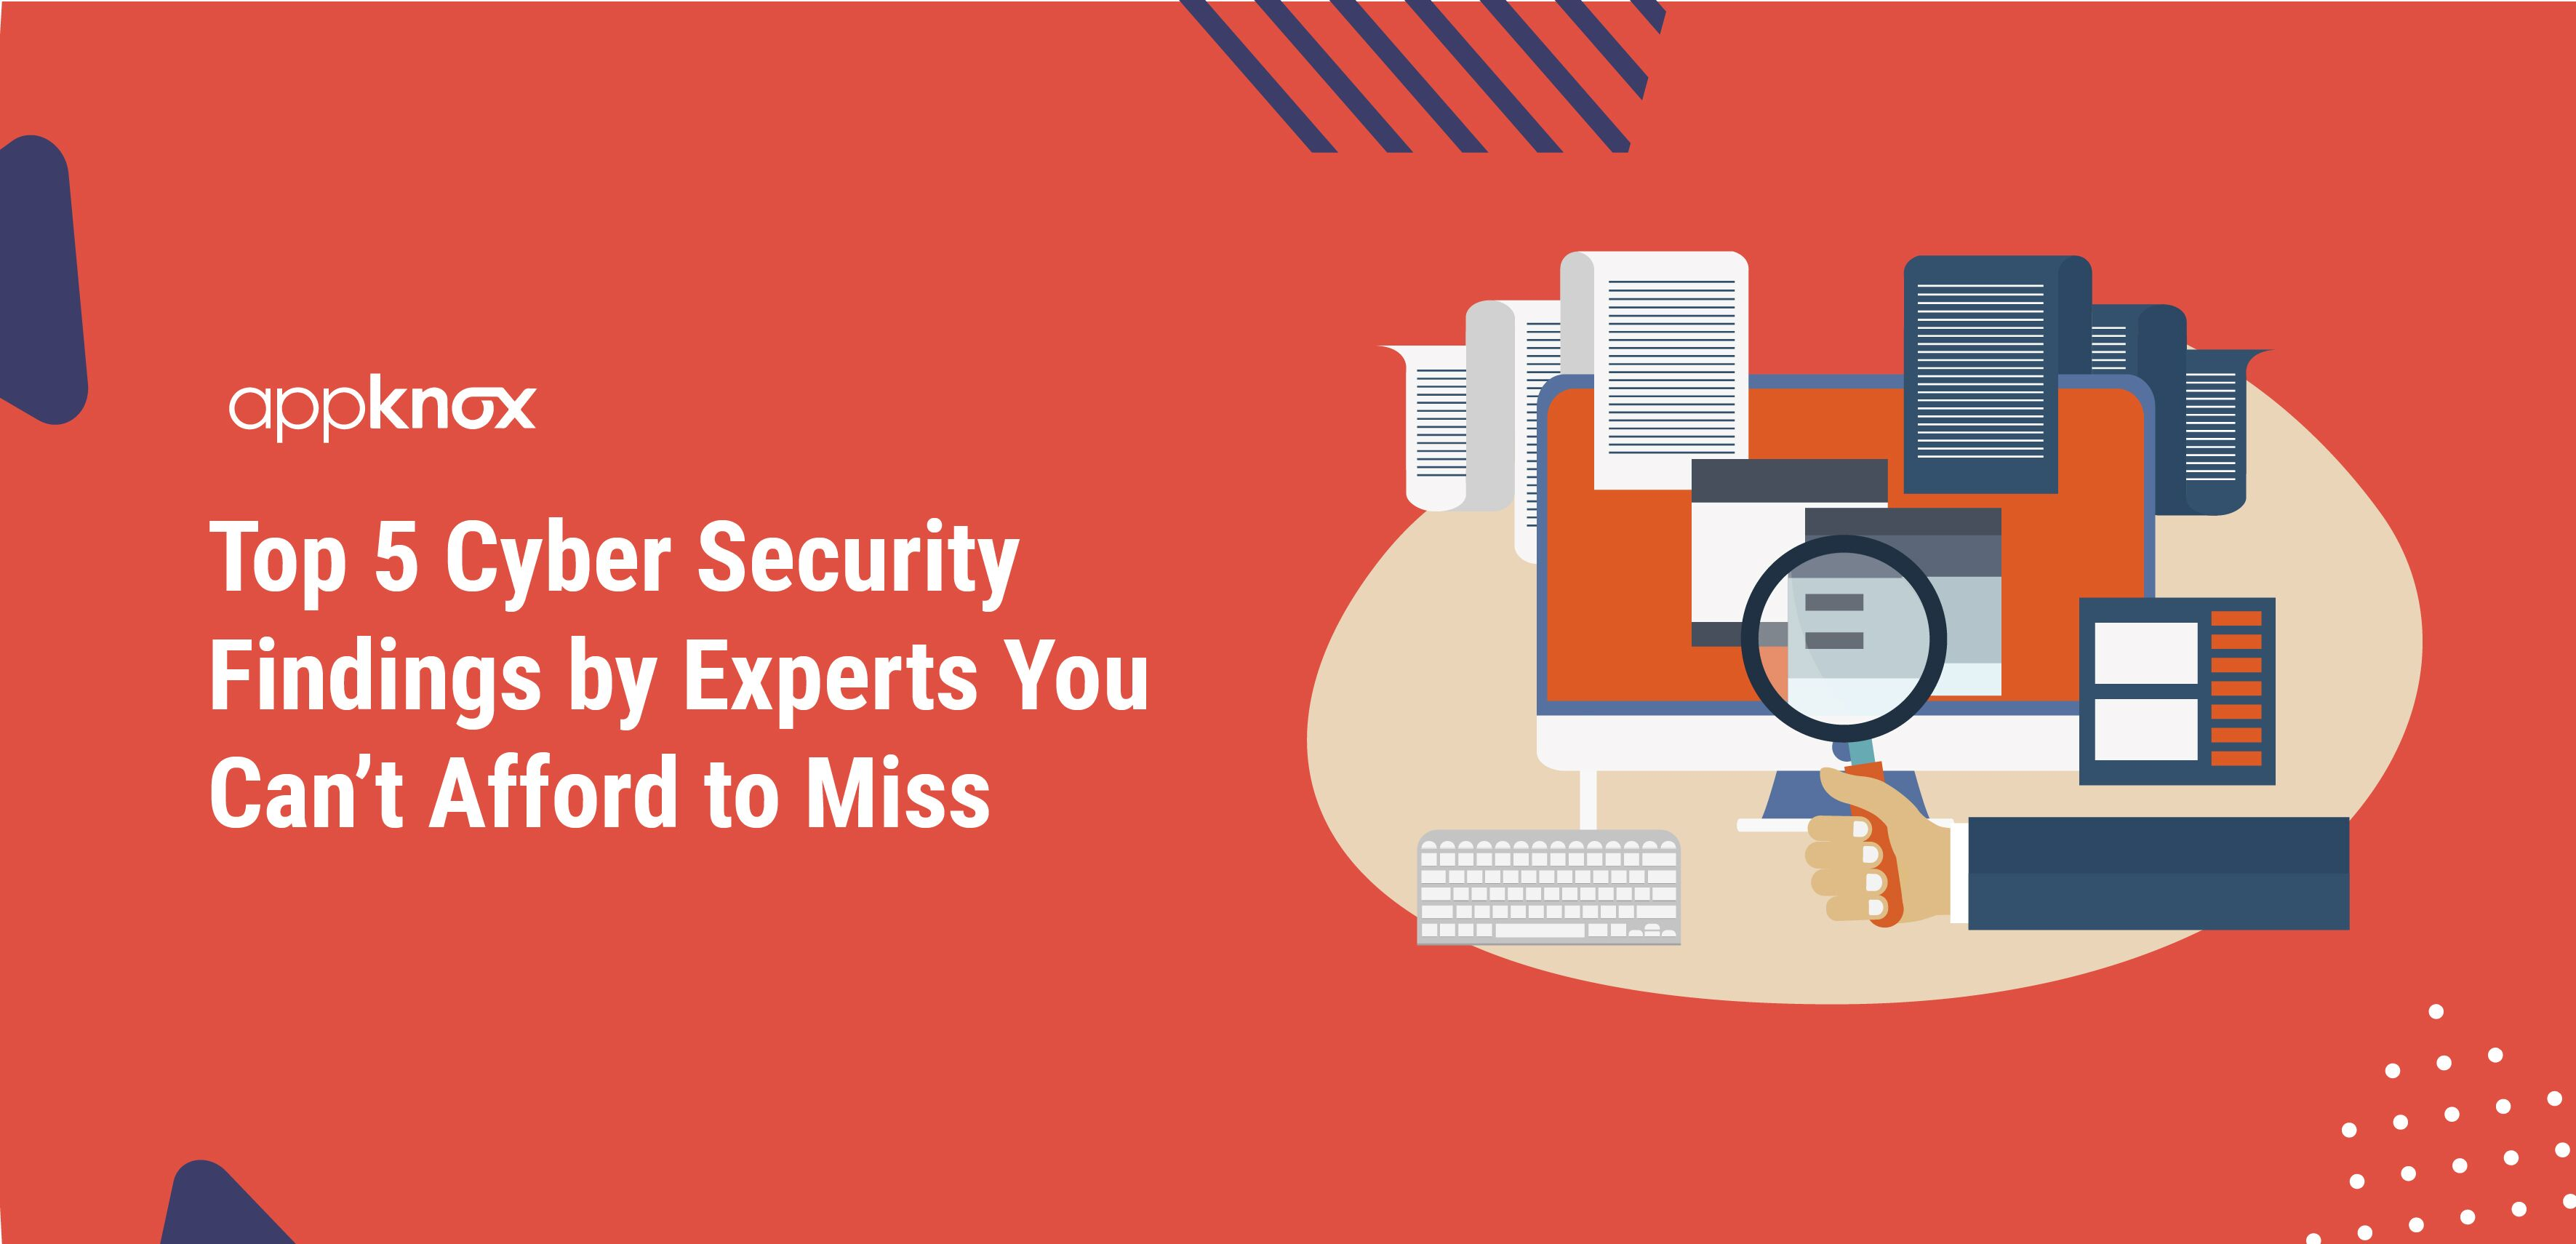 Top 5 Cyber Security Findings by Experts You Can't Afford to Miss